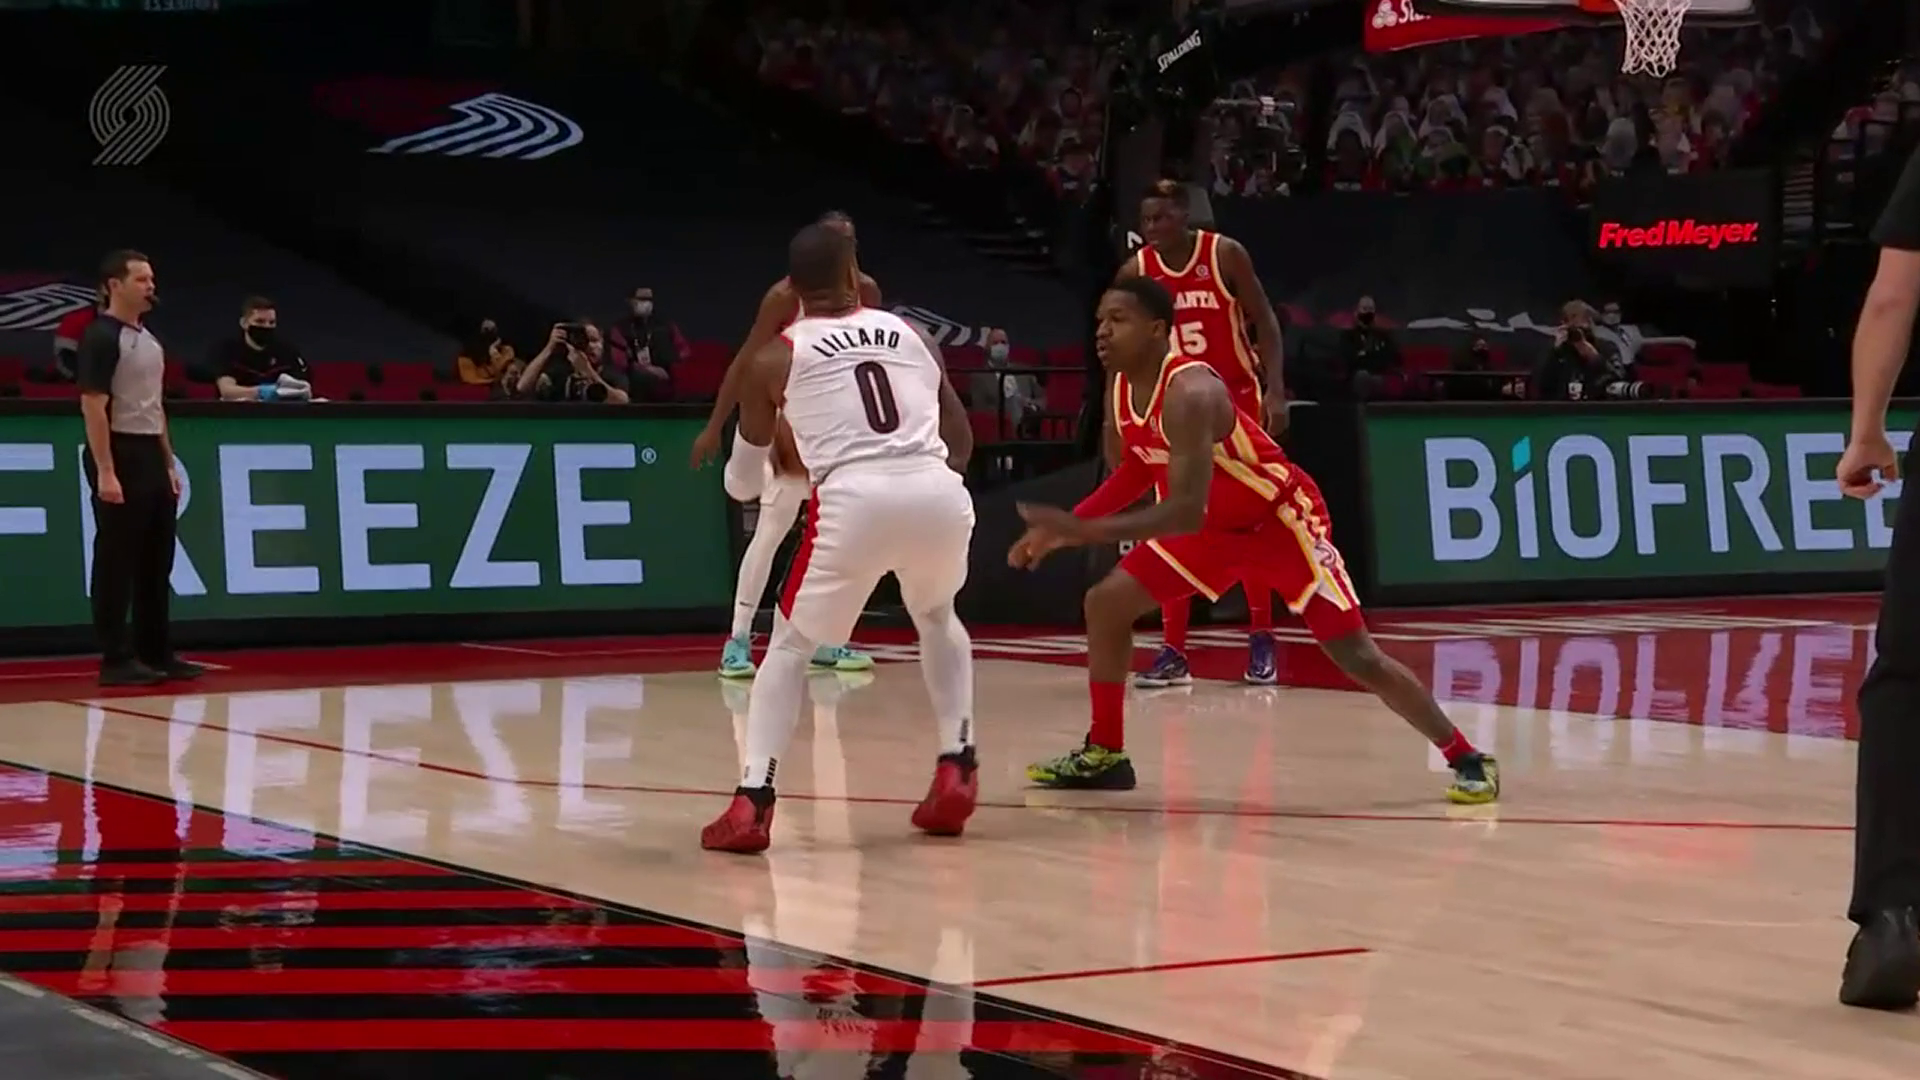 Damian Lillard buries a three directly in the defender's face